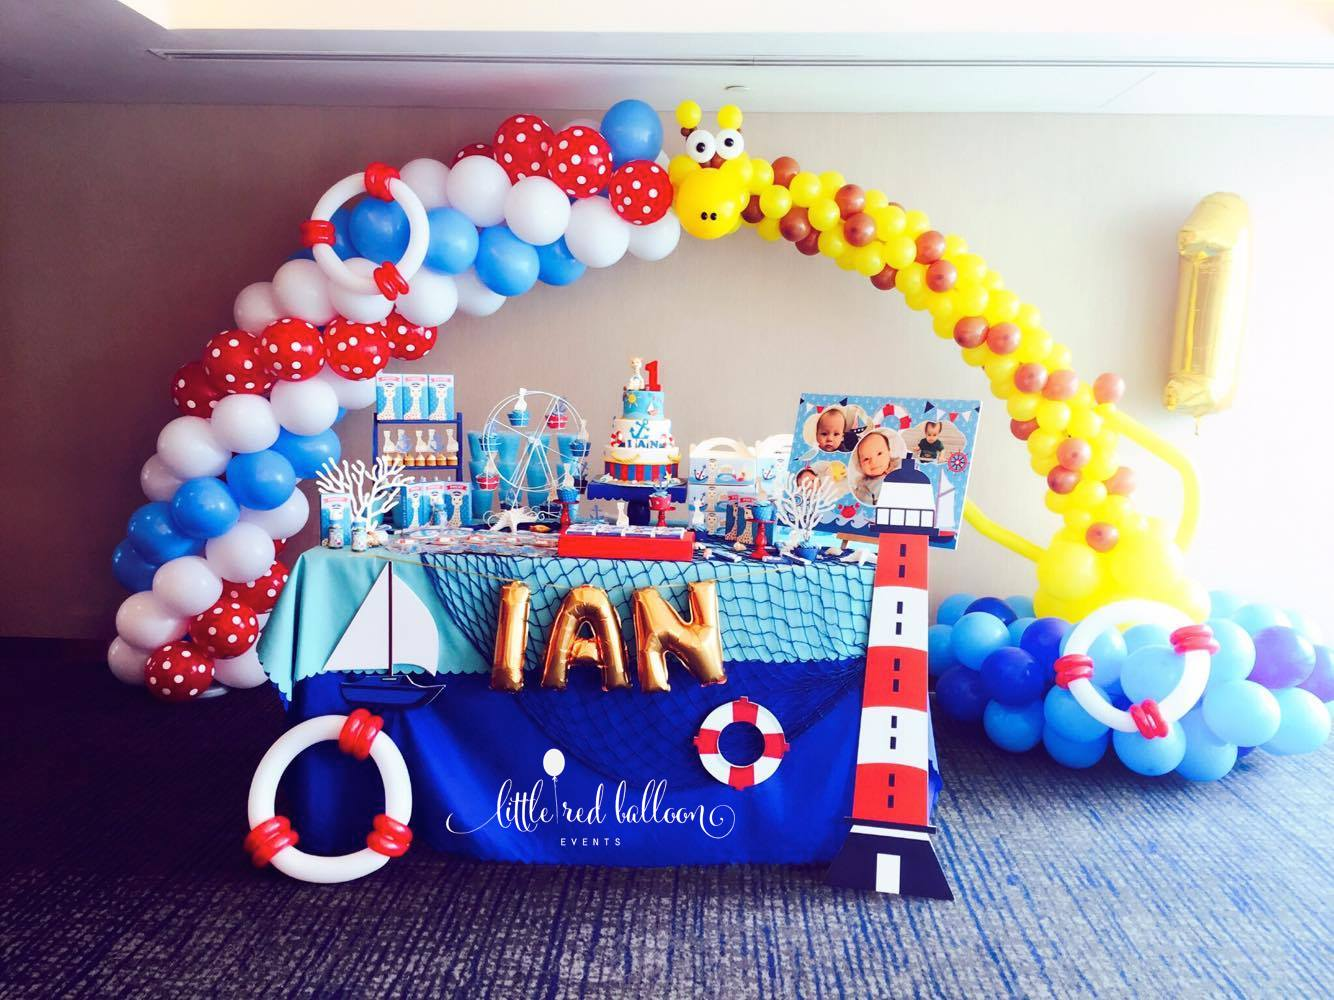 Nautical balloon arch singapore little red balloon singapore for Baby shower decoration singapore